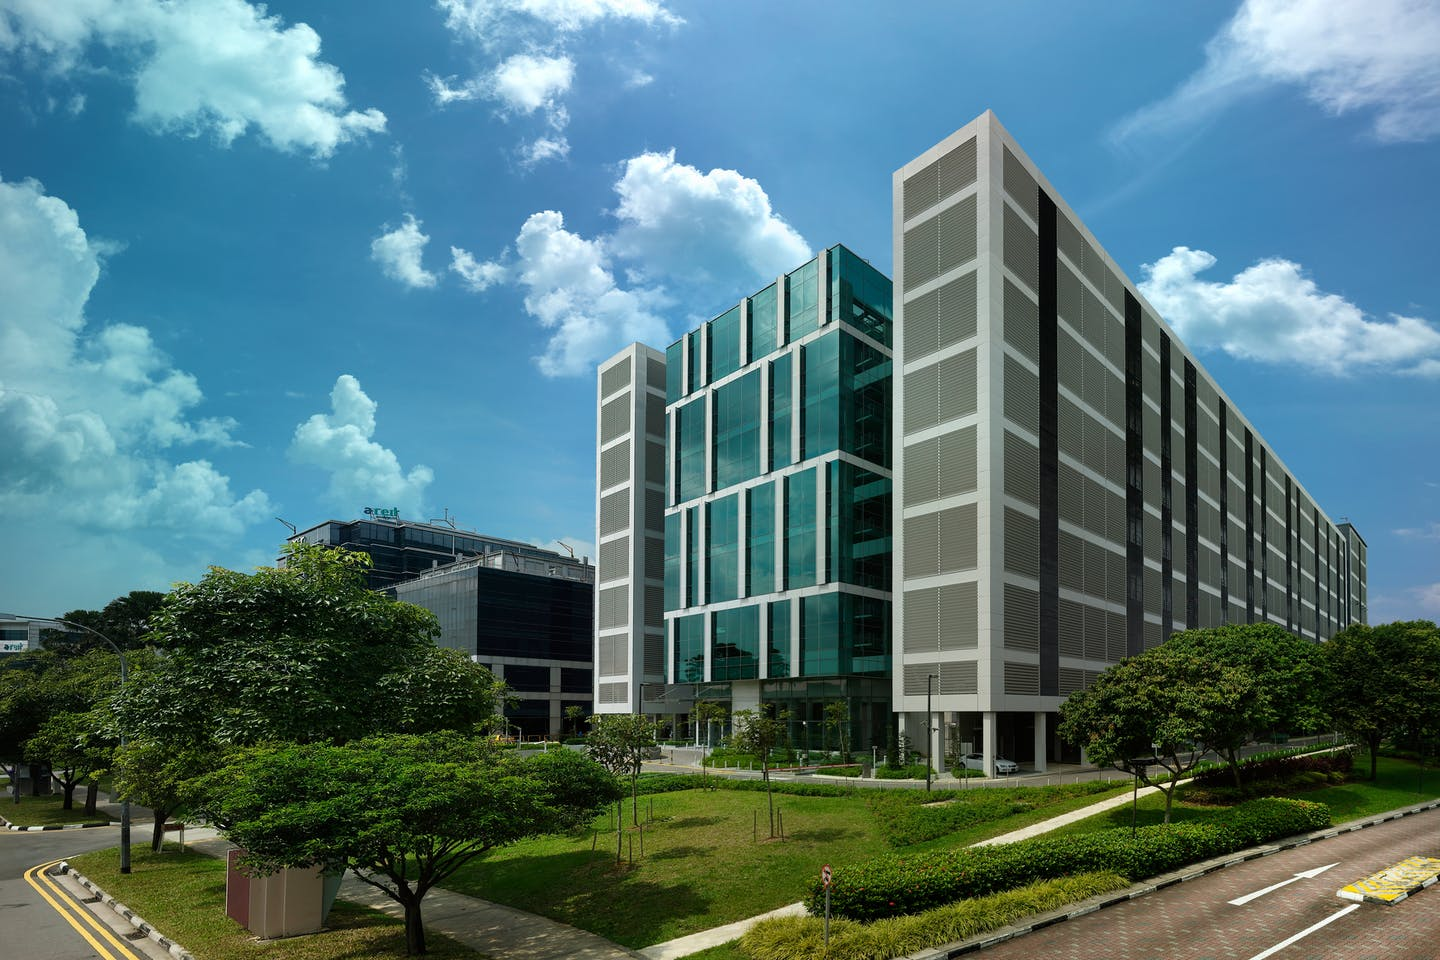 Sustainable growth a top priority for Southeast Asia as region set to deliver fastest data center growth: Digital Realty / Eco-Business Study